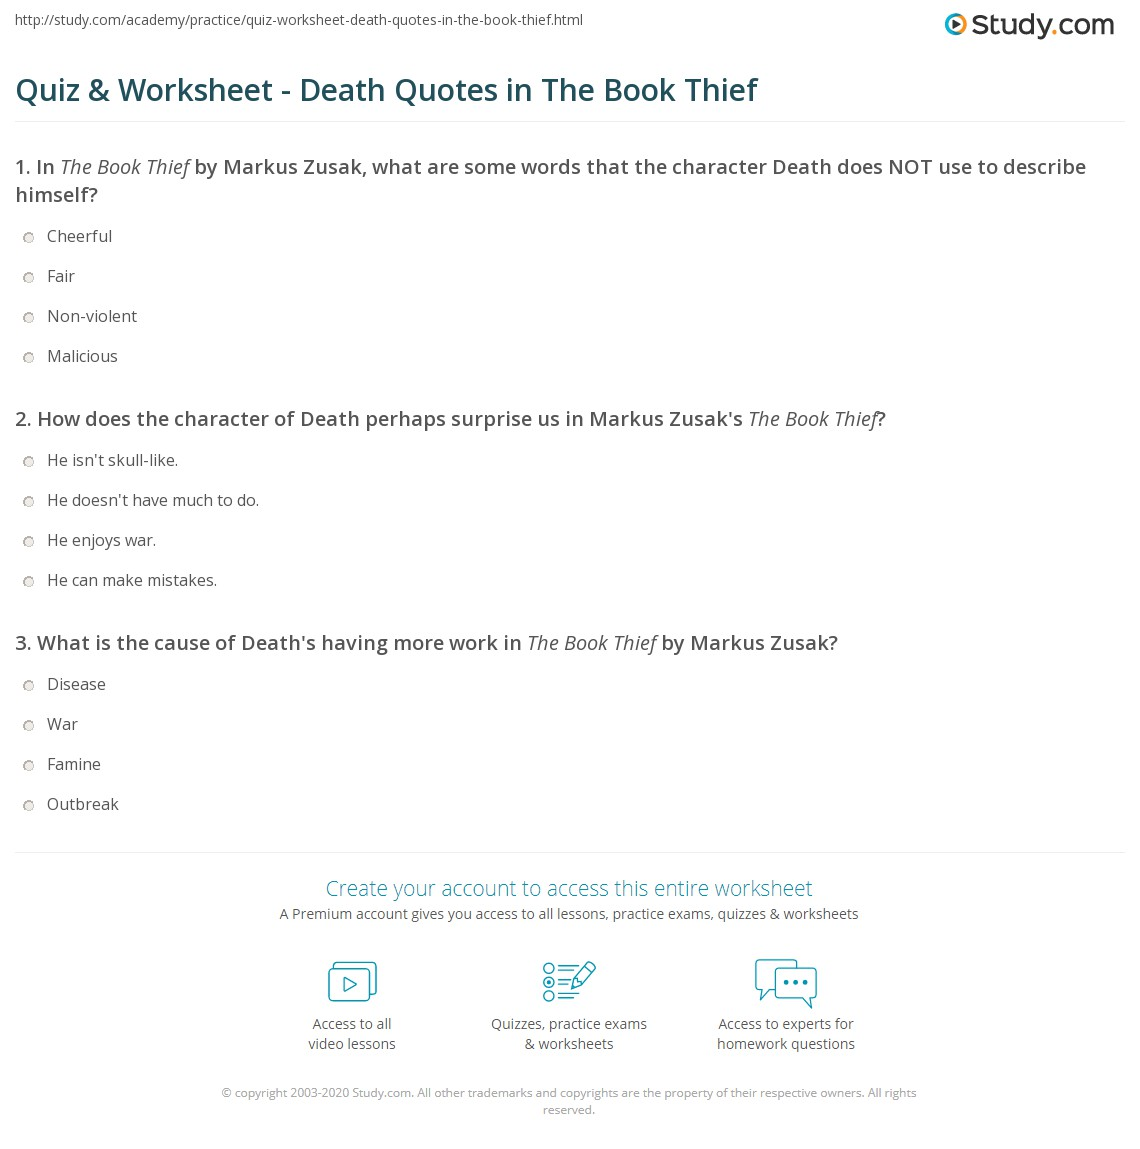 quiz worksheet death quotes in the book thief com how does the character of death perhaps surprise us in markus zusak s the book thief